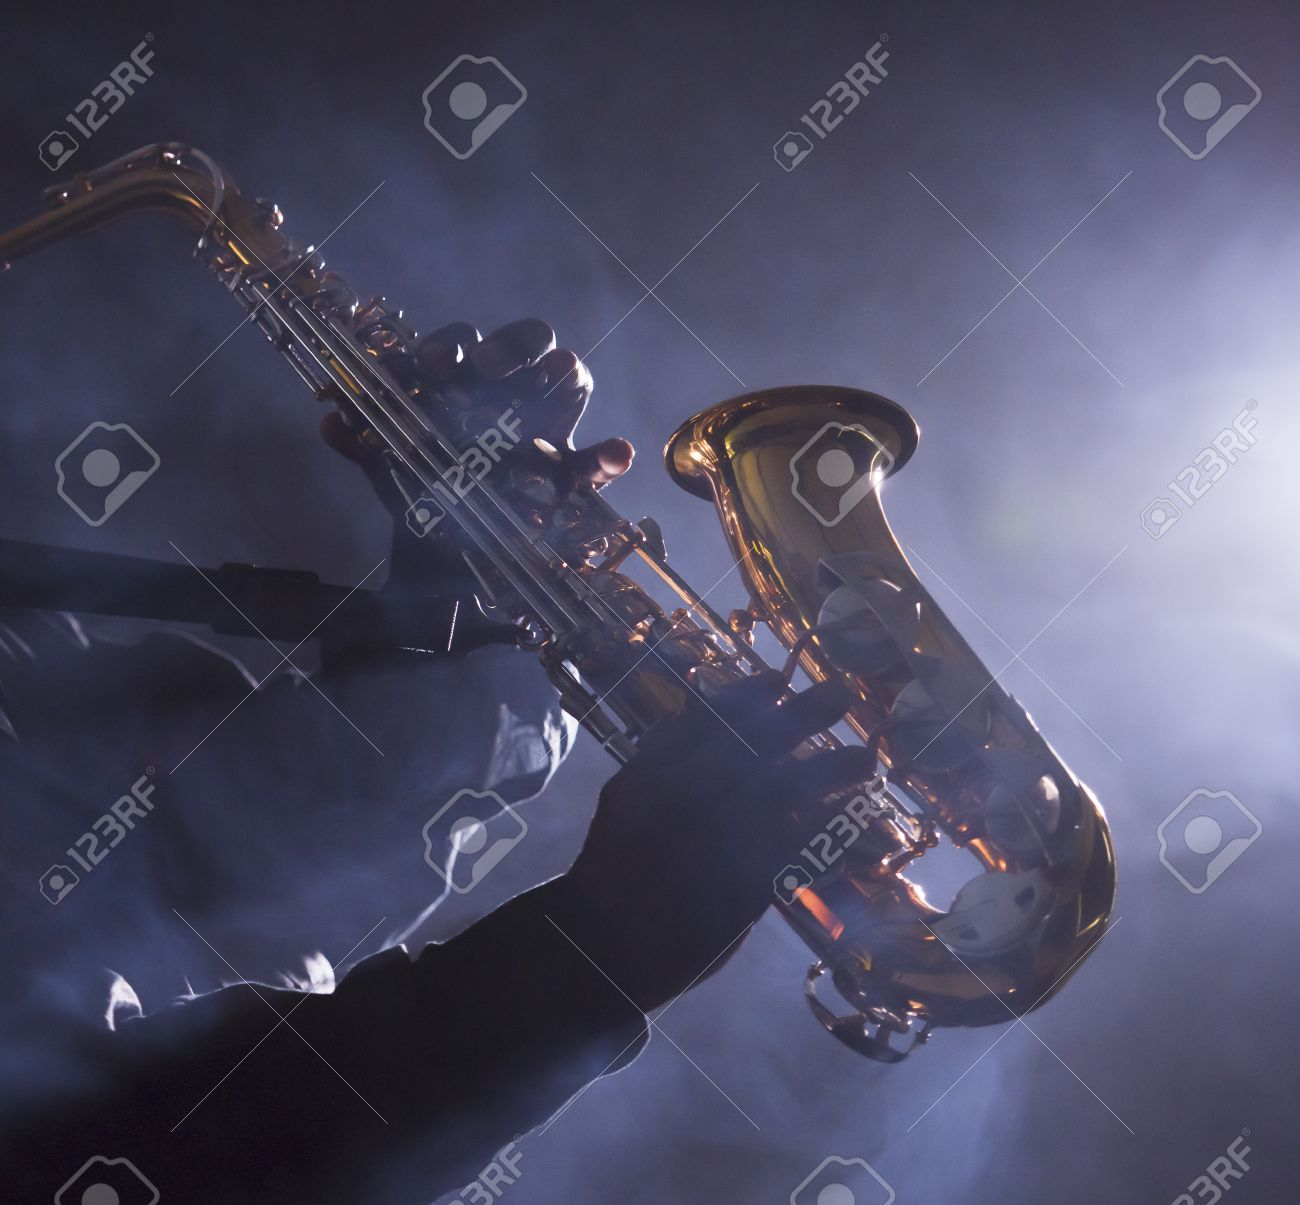 African jazz musician playing the saxophone - 38728296